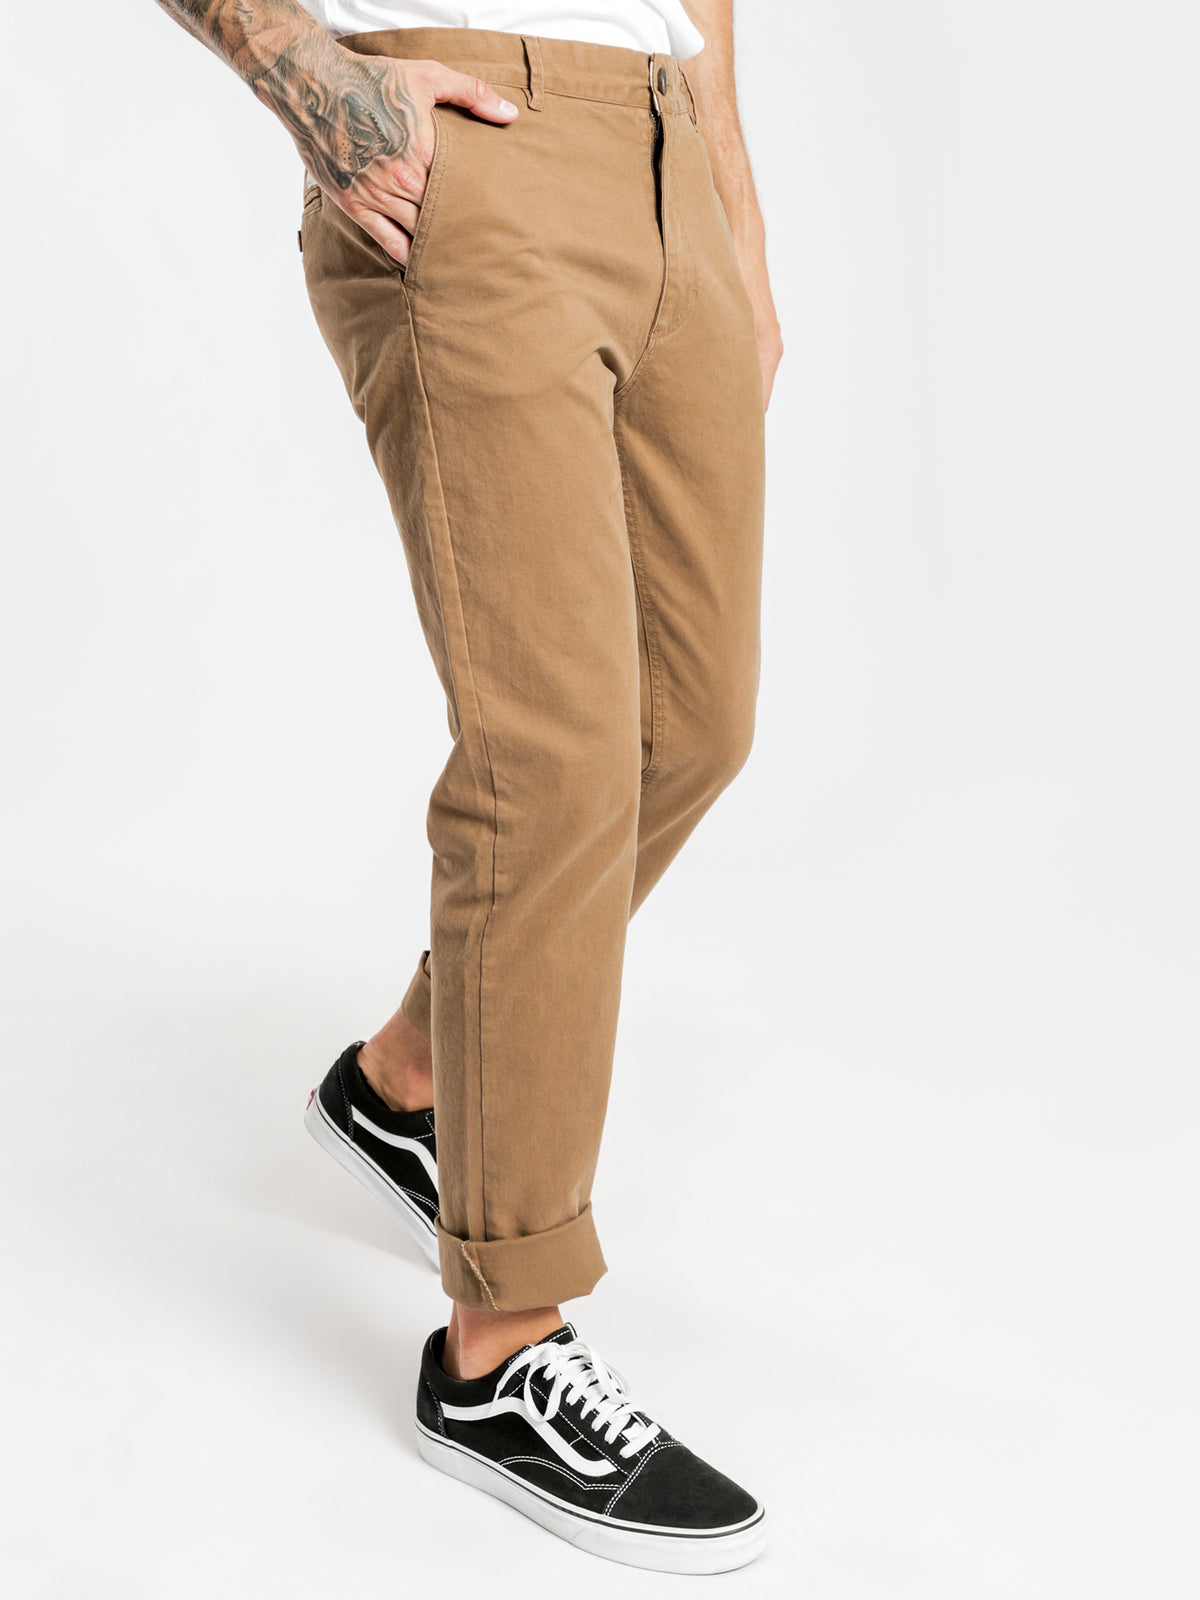 Hunter Chino in Tan